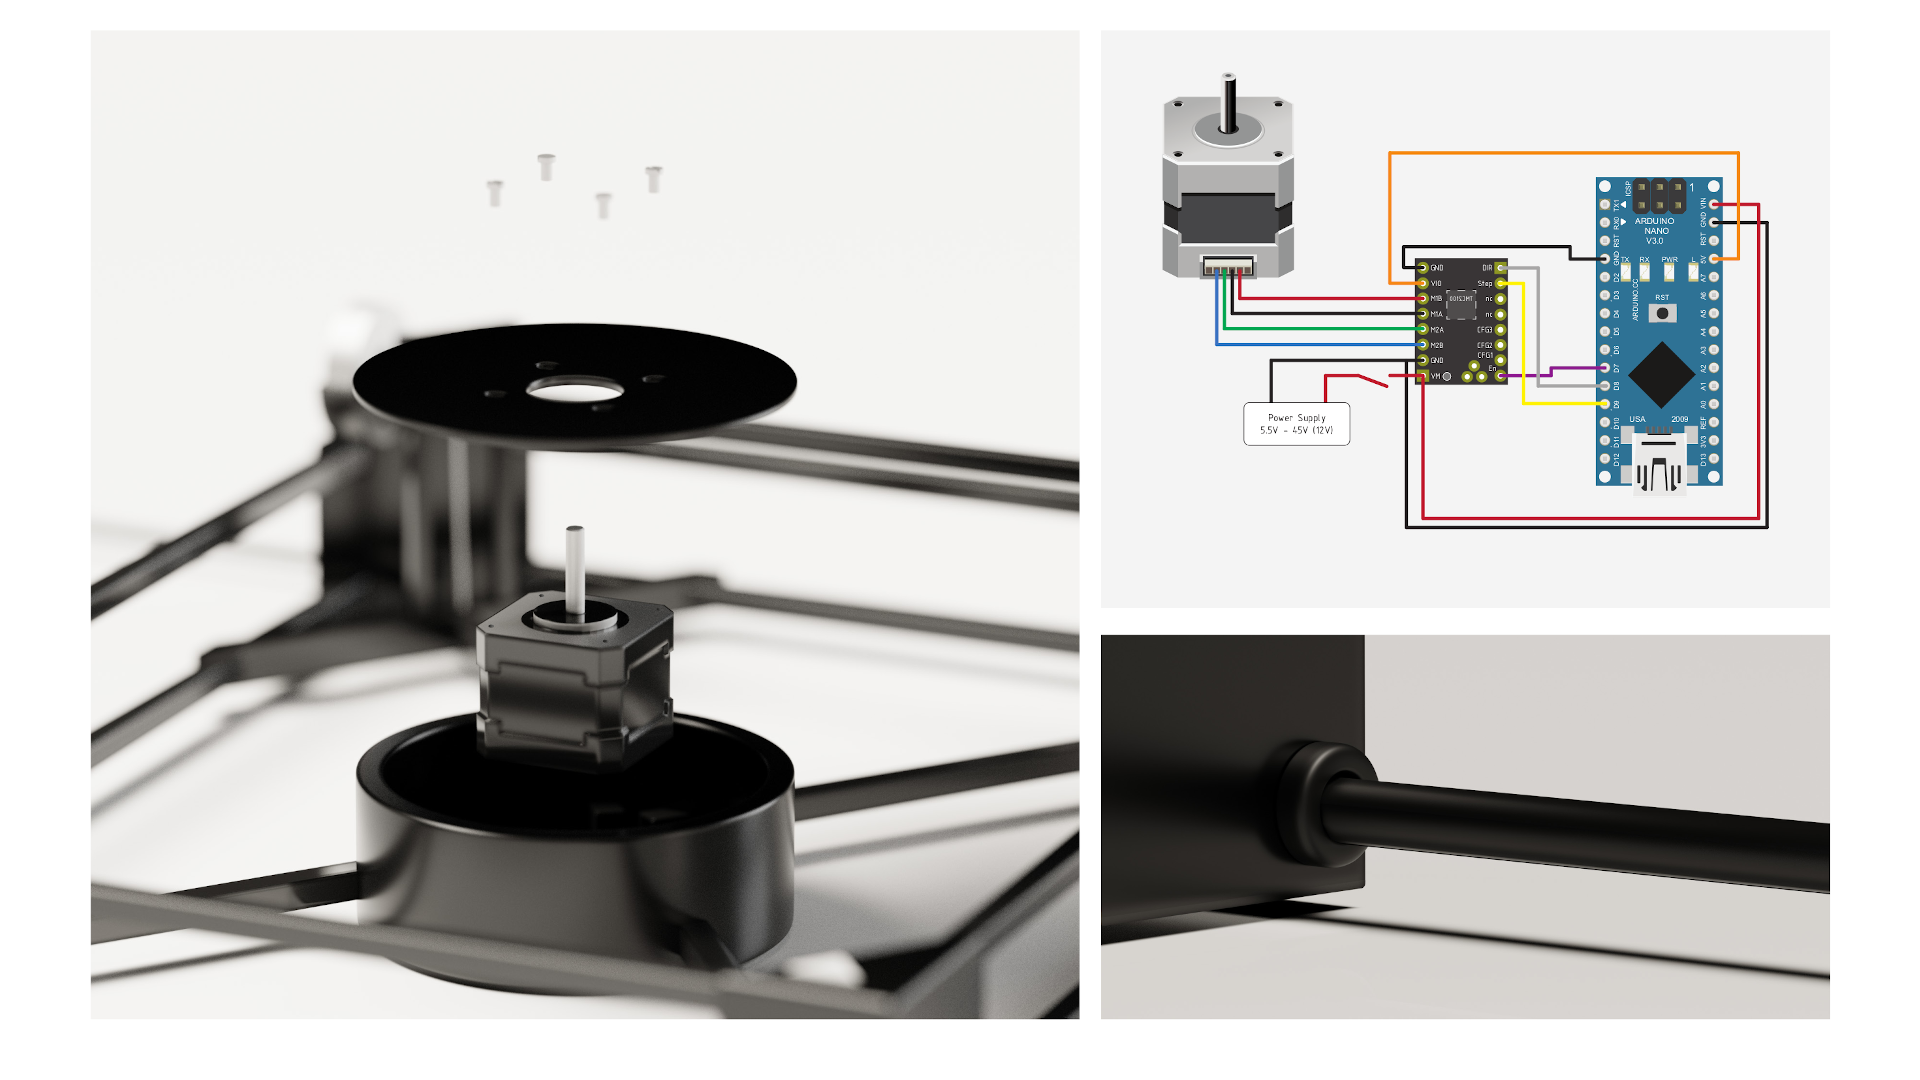 Electronics and mechanics of turntable